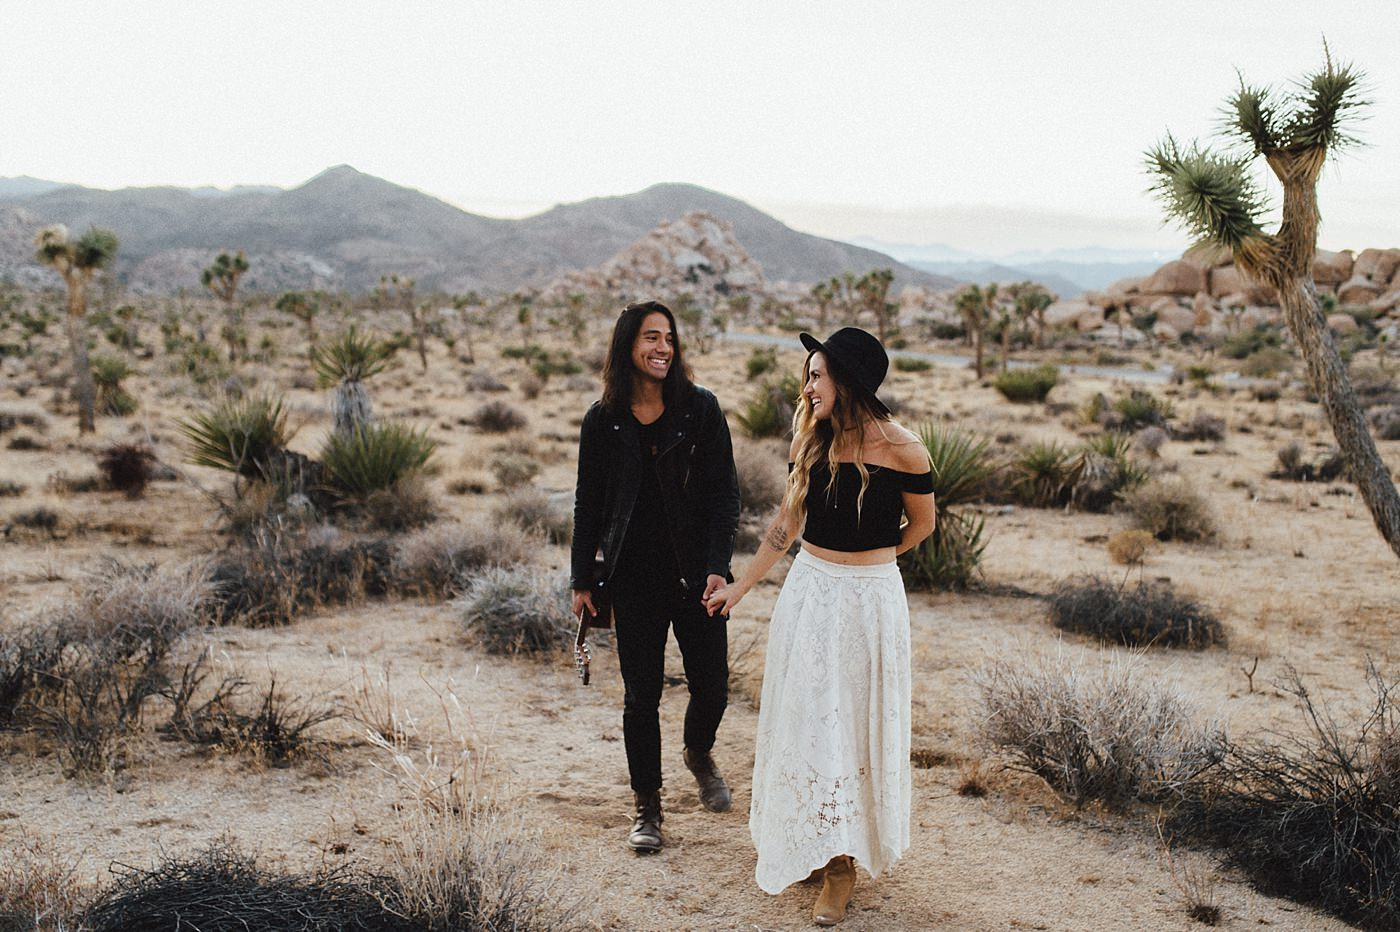 international-elopement-photographer_0206 Kinsey & Josh & Banjo Photographer in Joshuatreeinternational elopement photographer 0206